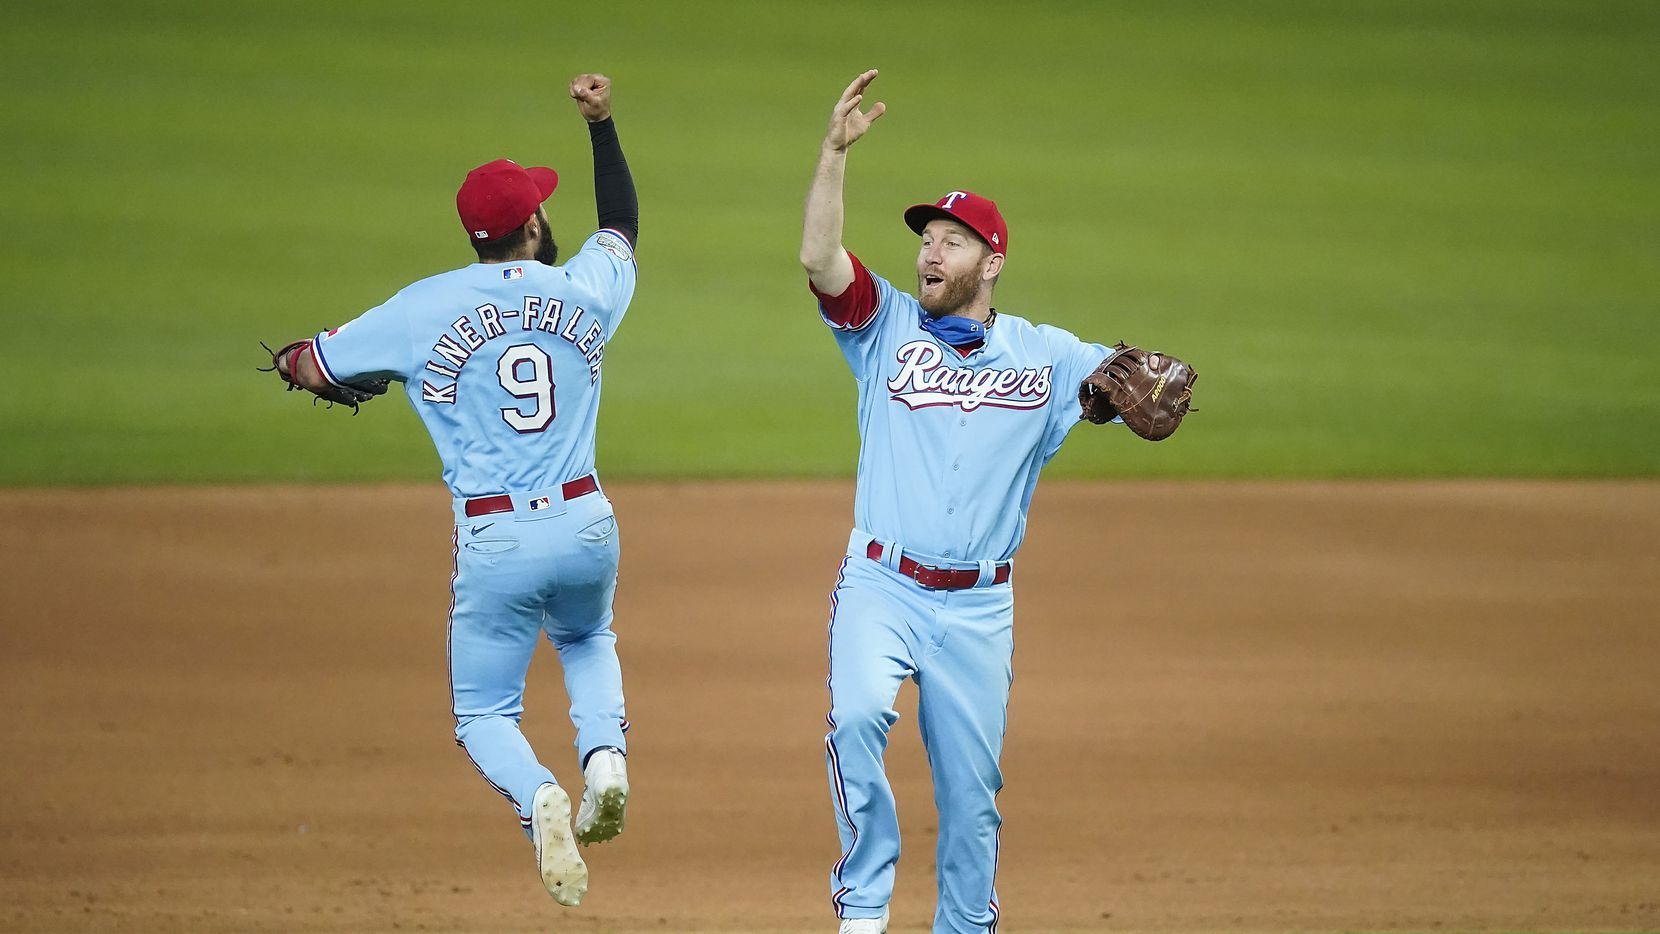 Texas Rangers third base Isiah Kiner-Falefa celebrates with first baseman Todd Frazier after a 7-3 victory for a series sweep of the Los Angeles Angels at Globe Life Field on Sunday, Aug. 9, 2020.